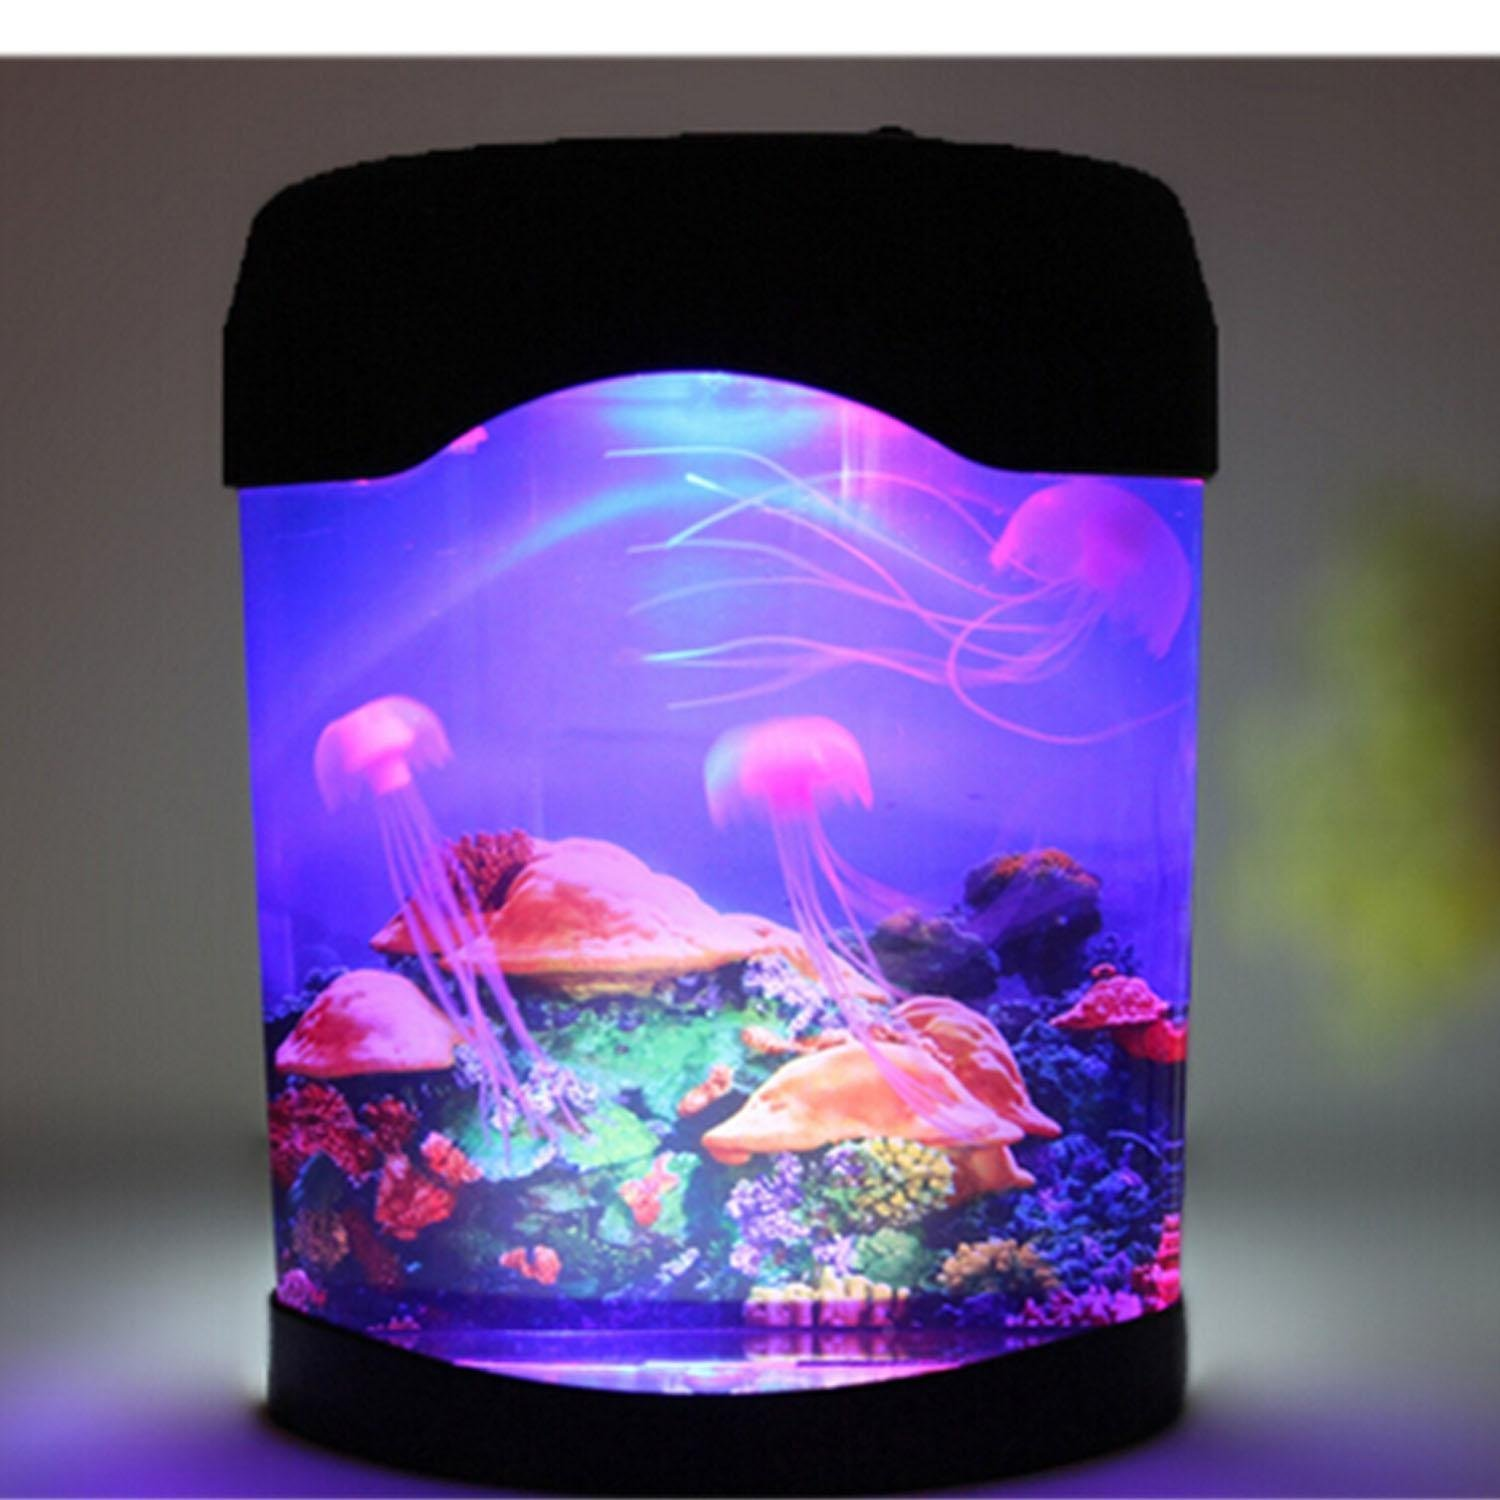 Jellyfish Aquarium Light Lamp Night Desk Fish Tank Mood